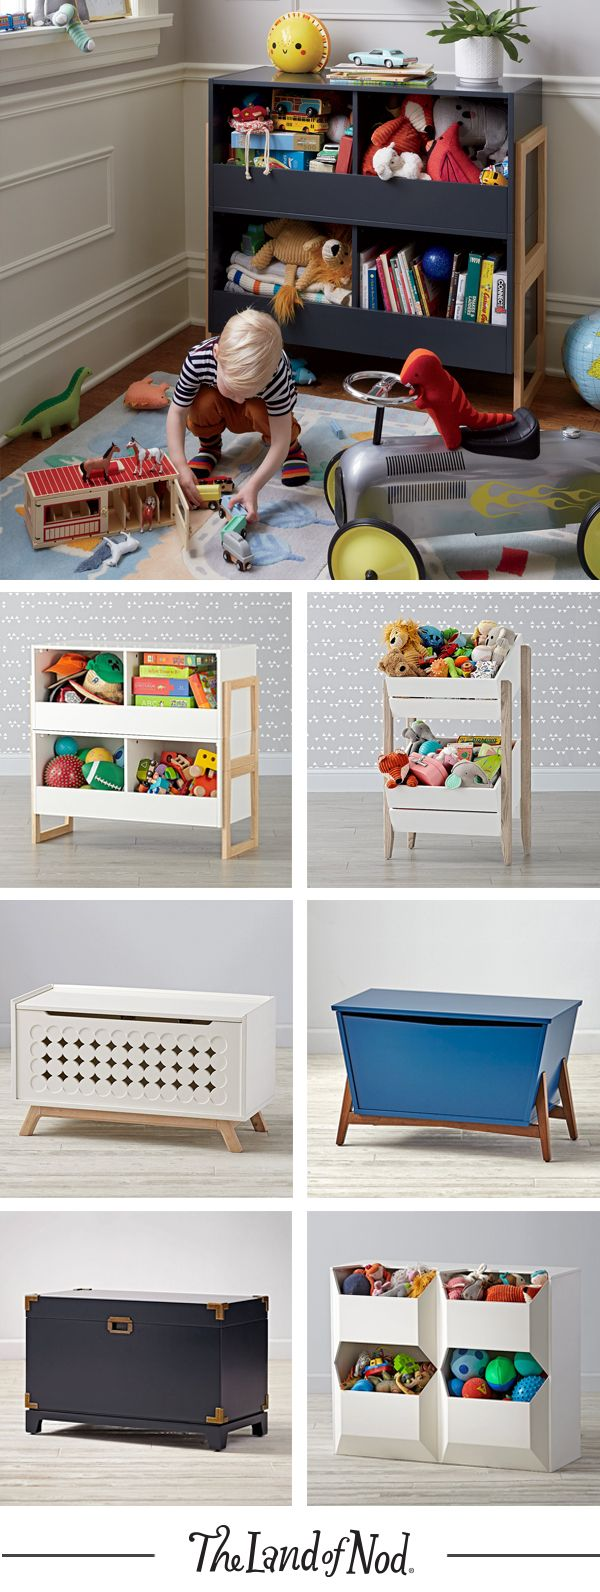 What Type Of Kids Furniture Clears Up Any Mess? The Answer Is A Toy Box